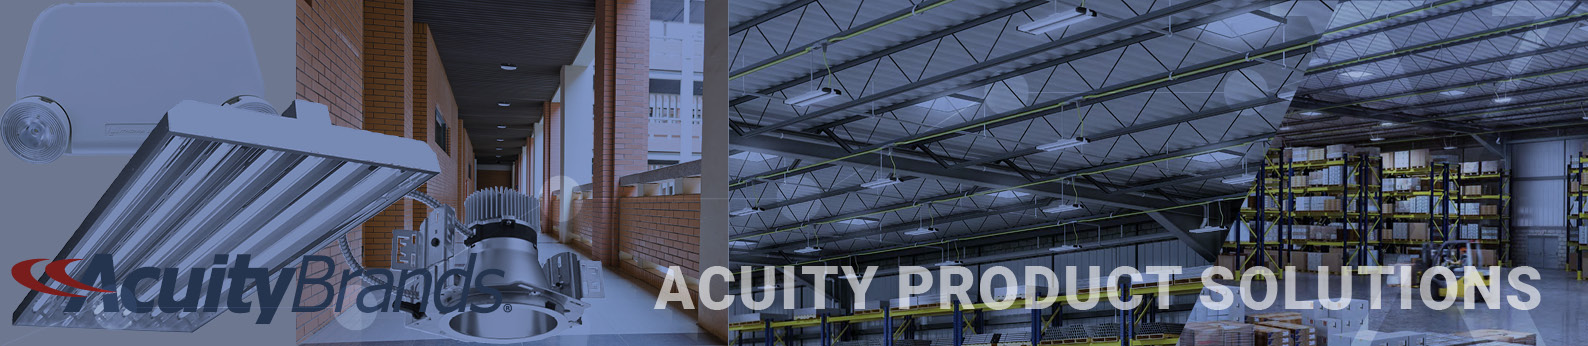 Acuity Product Solutions from Connexion